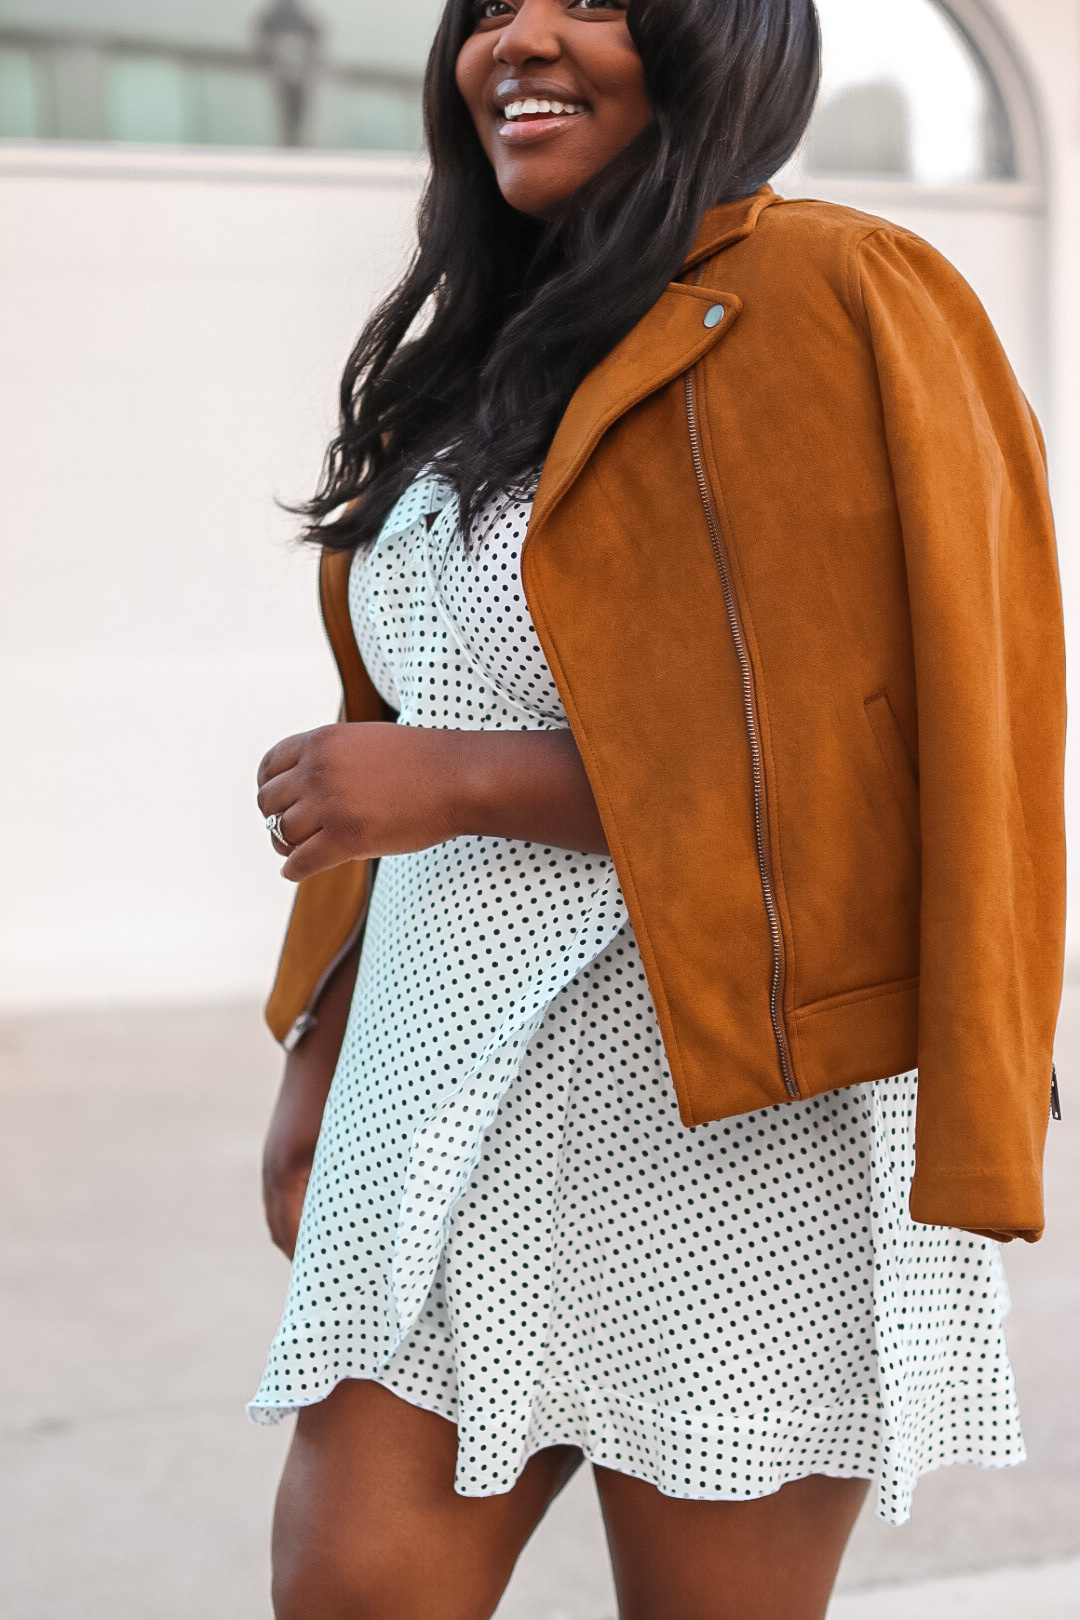 moto jacket and polka dot dress